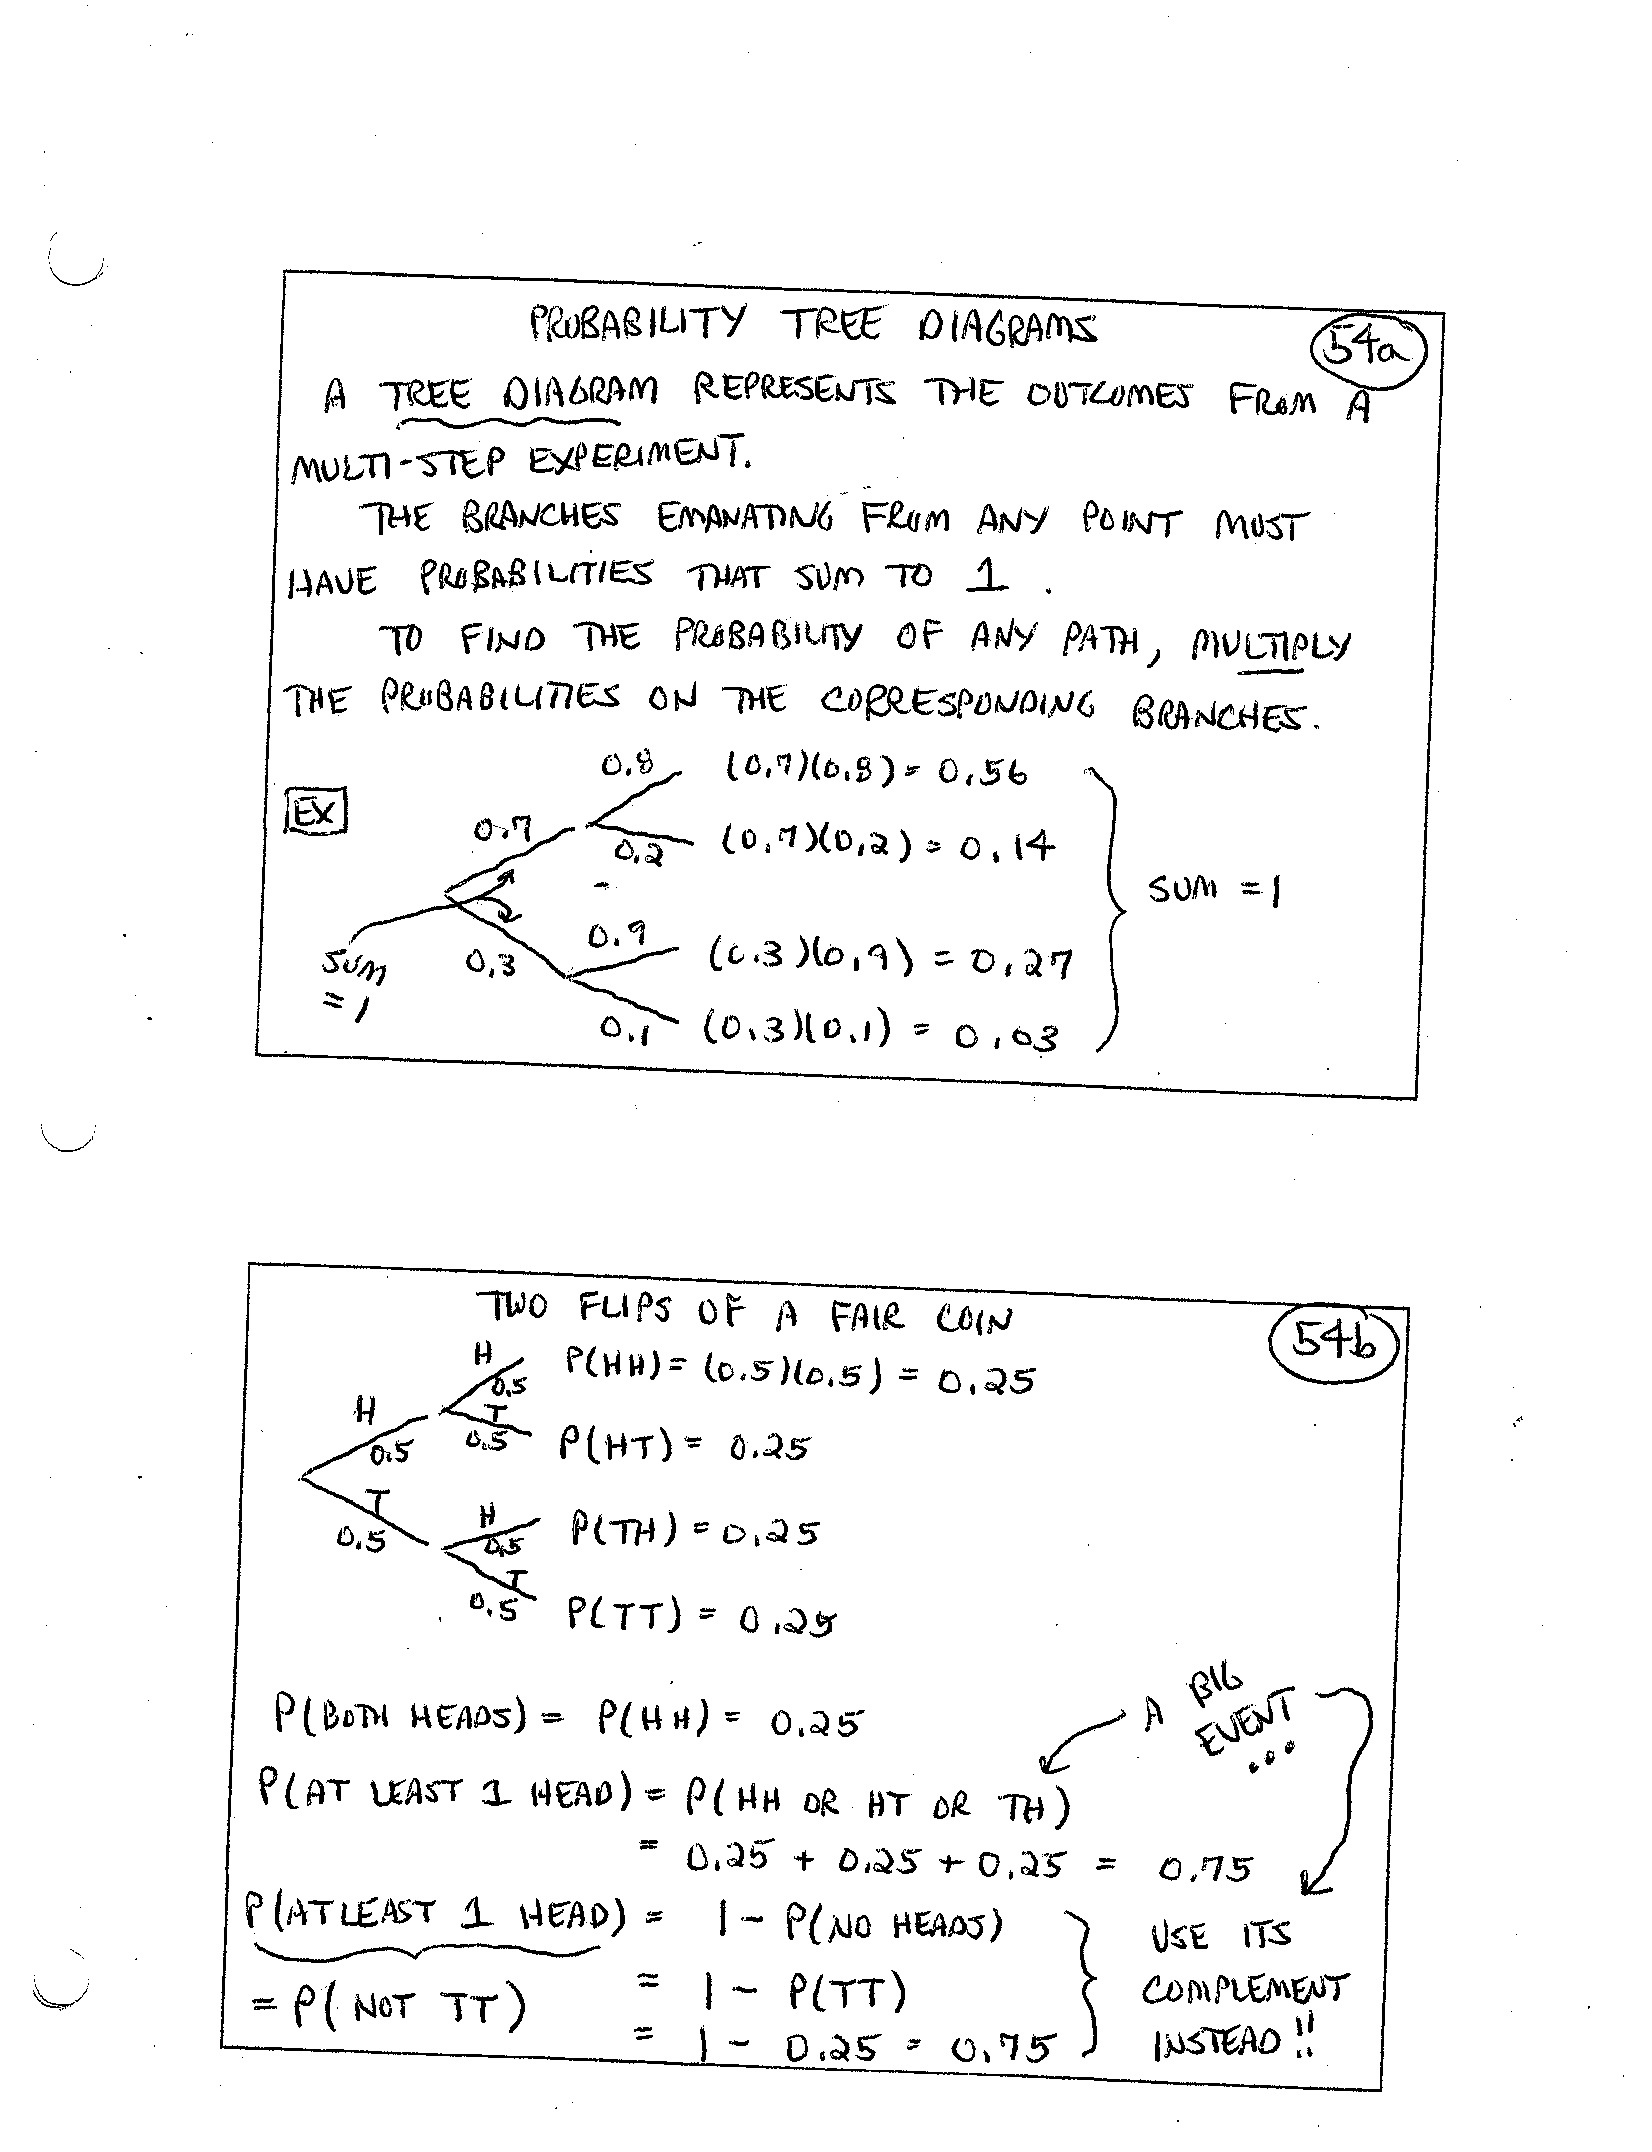 Probability Tree Diagram Worksheet